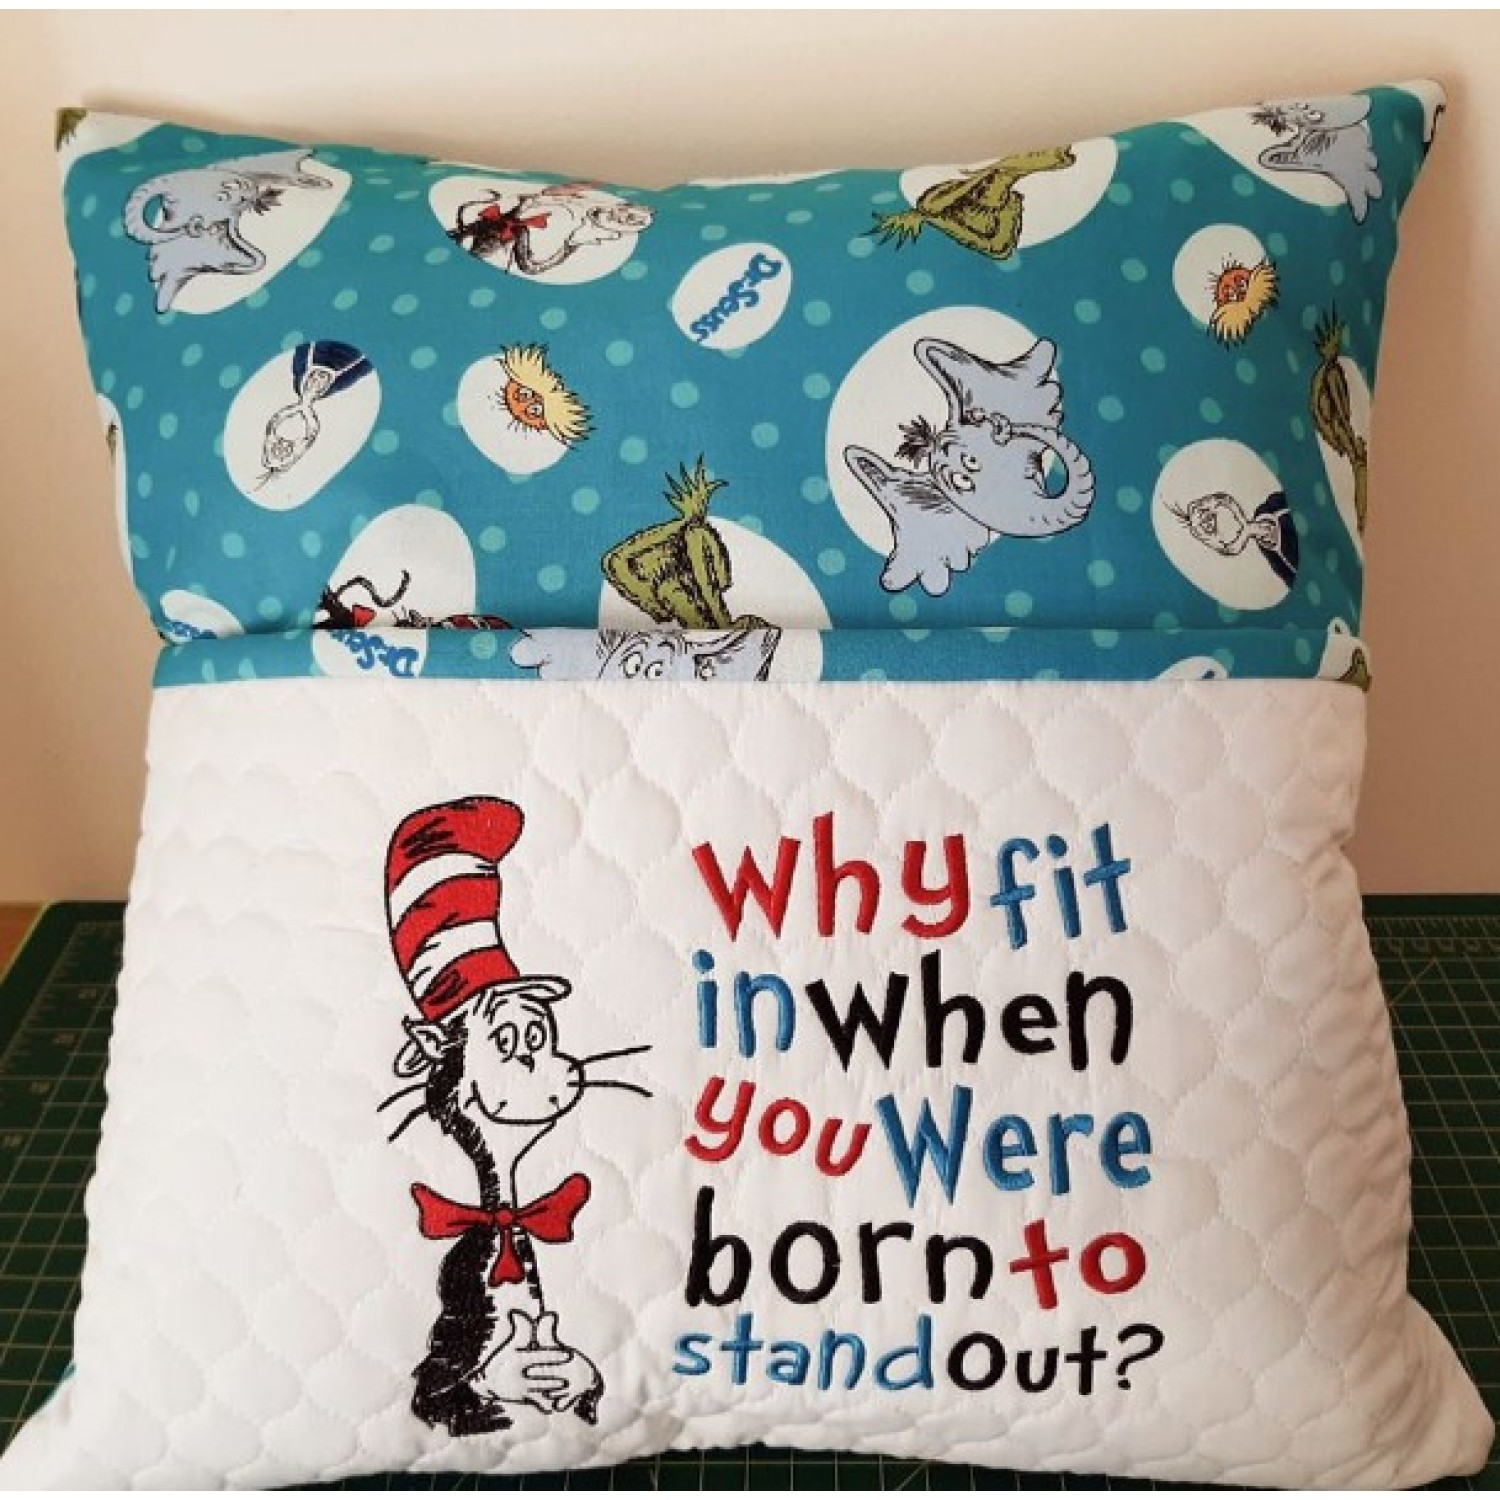 Dr. Seuss embroidery with why fit